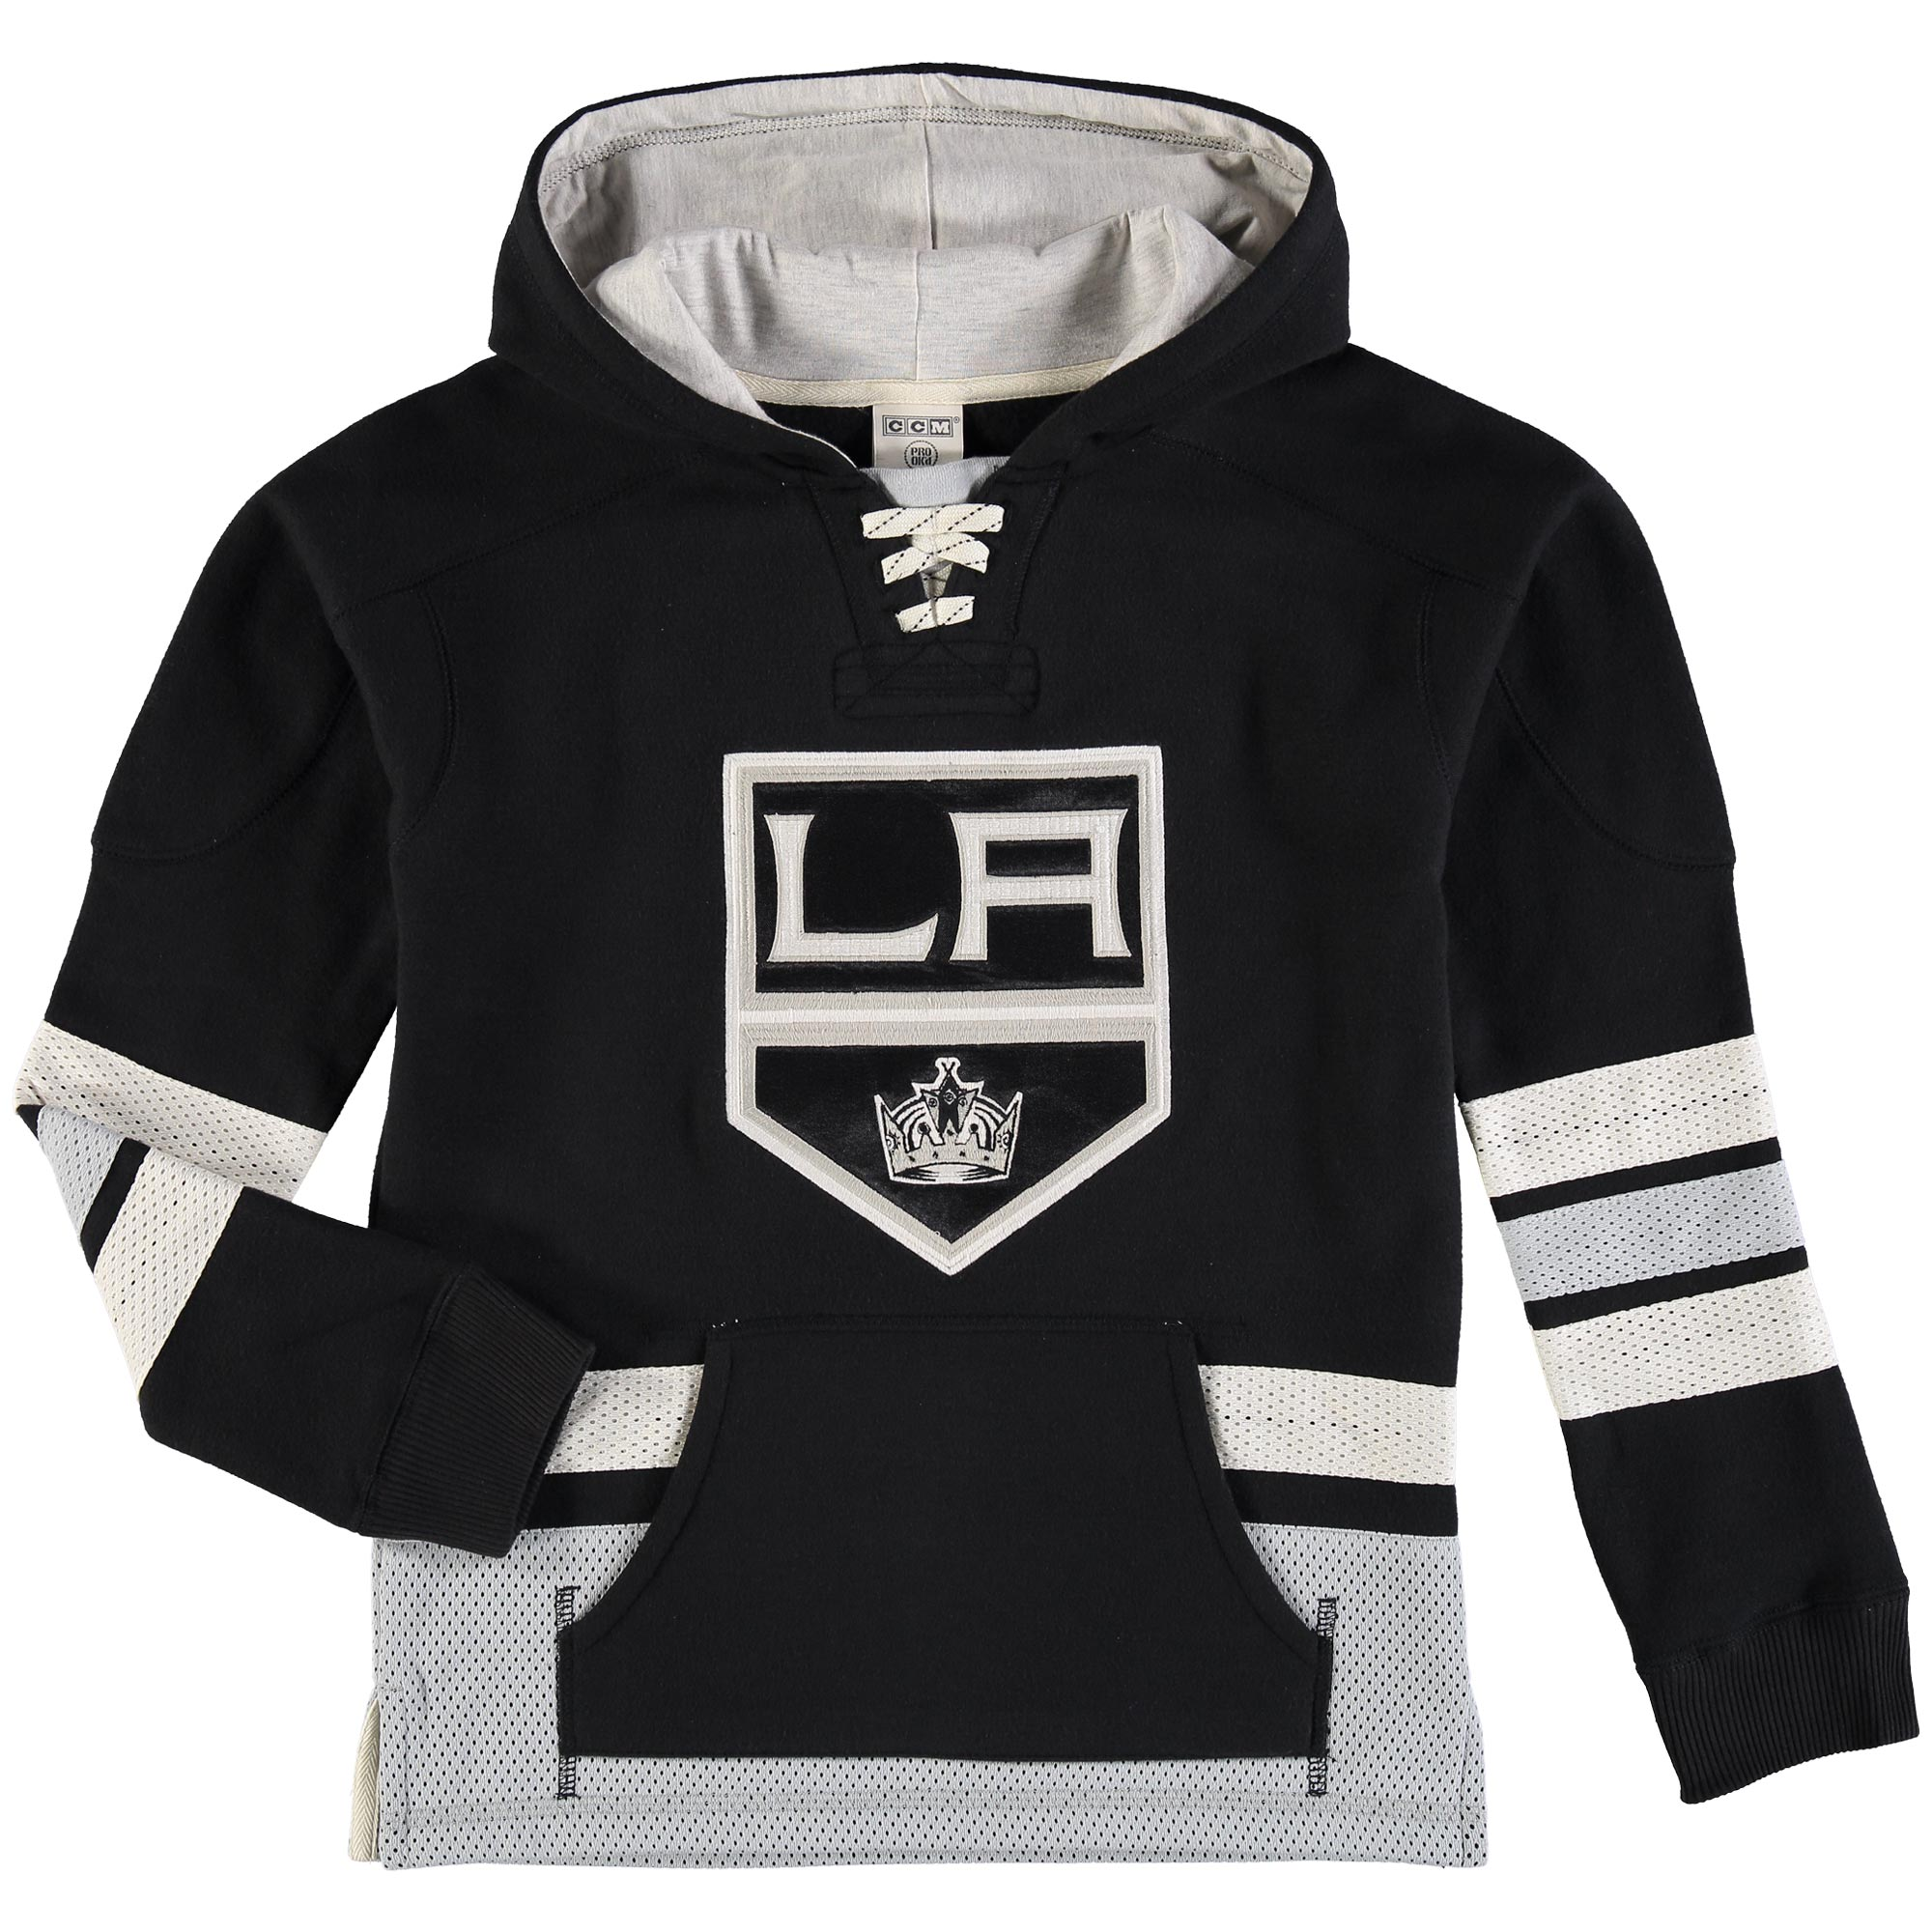 Los Angeles Kings Reebok Youth Retro Skate Hoodie Black by Outerstuff